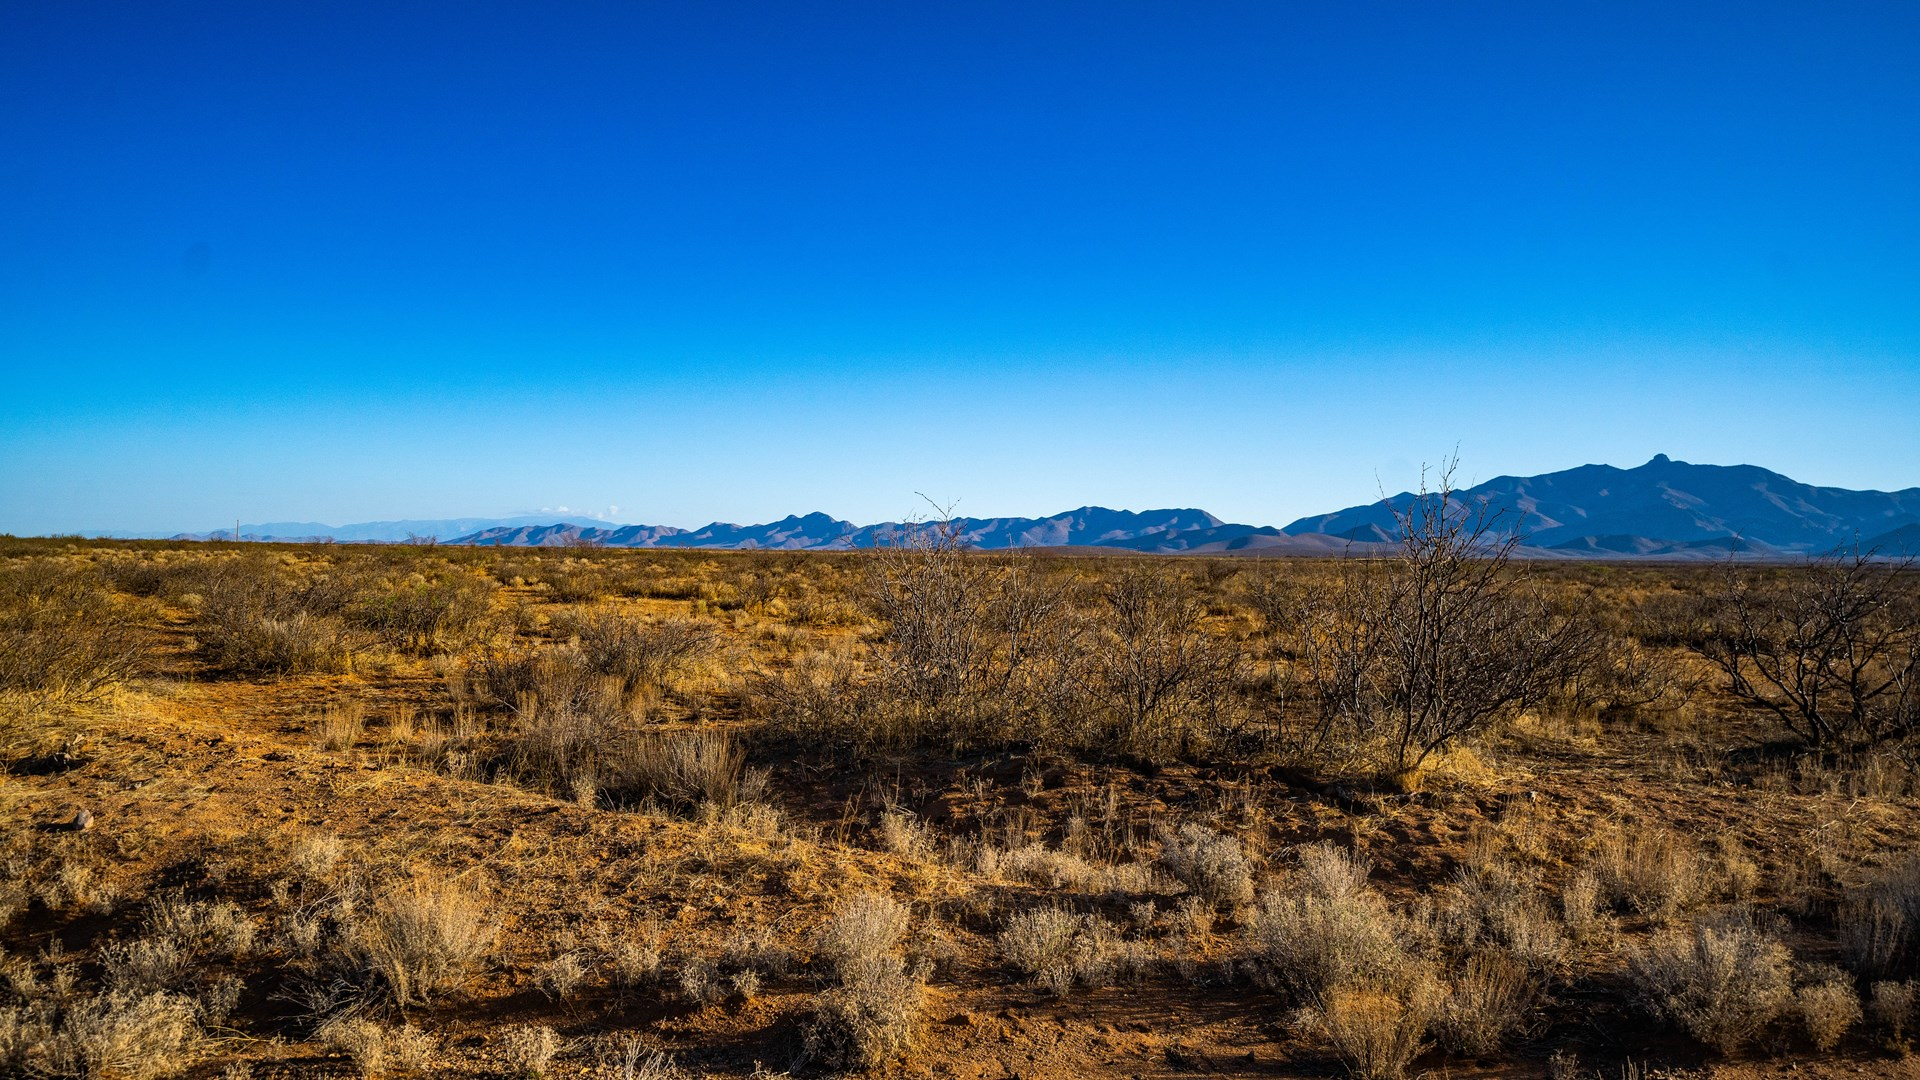 This 40-acre parcel surrounded by Mountains in Cochise